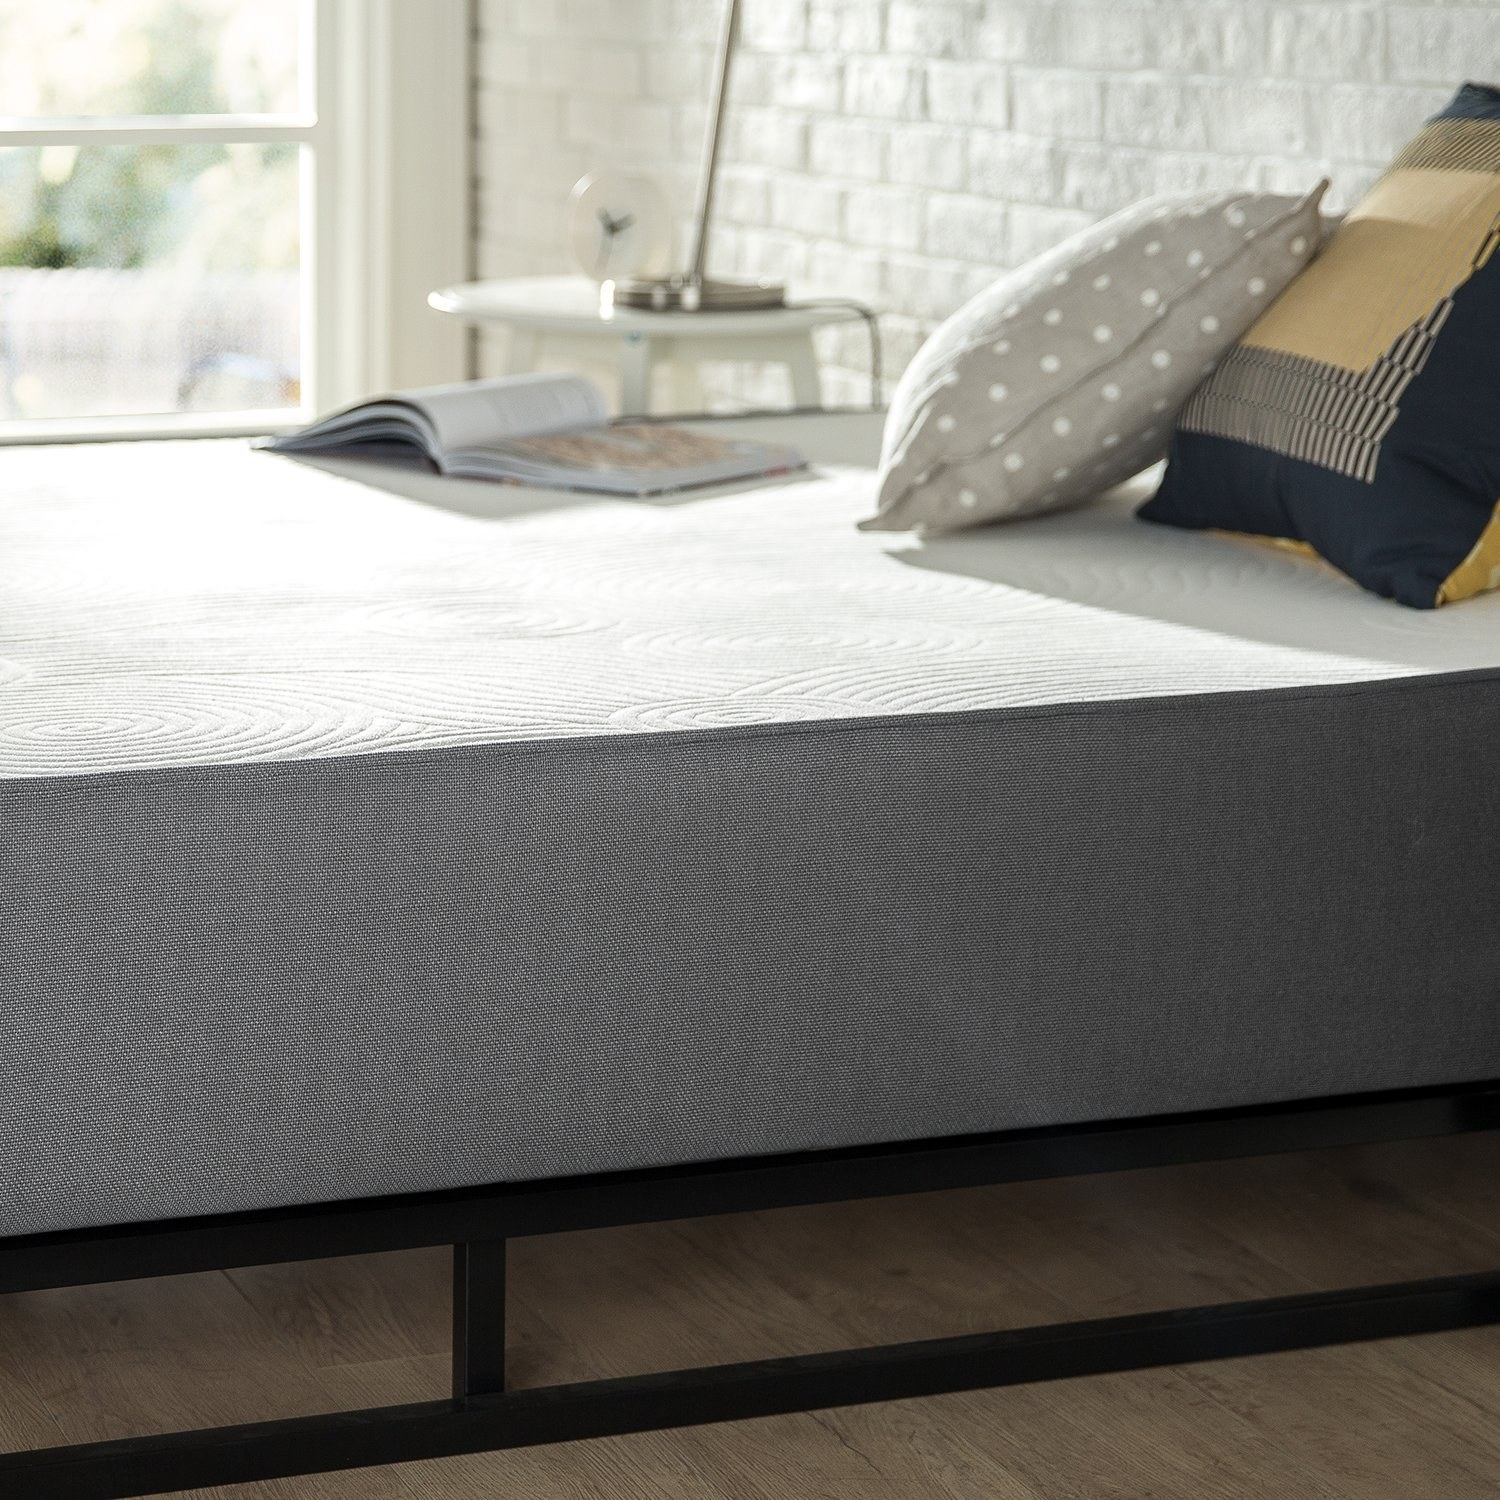 15 Of The Best Mattresses You Can Get On Amazon